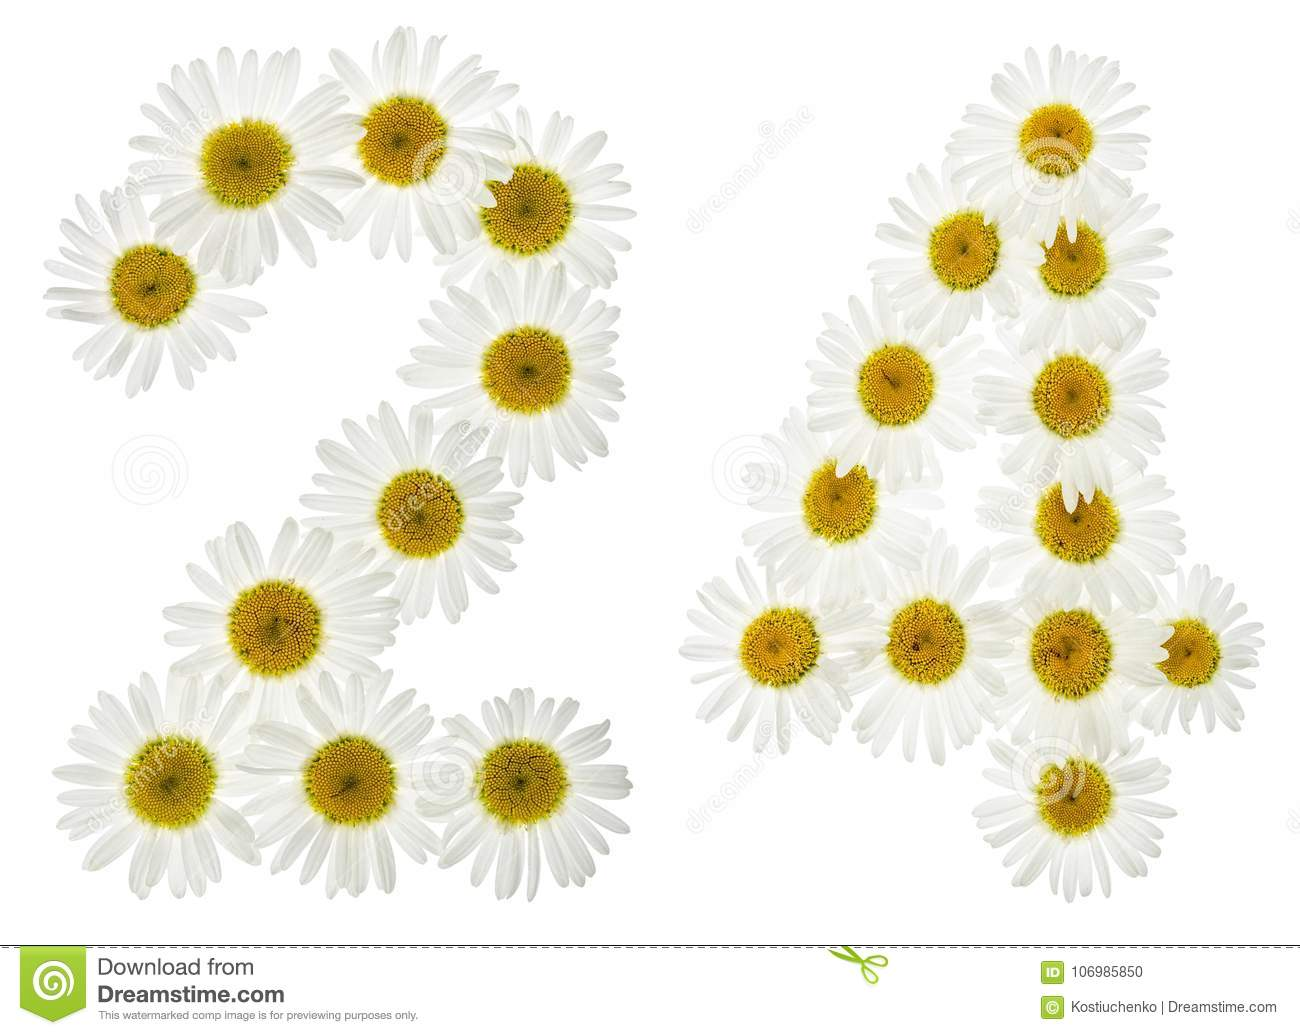 Arabic numeral 24, twenty four, from white flowers of chamomile, isolated on white background